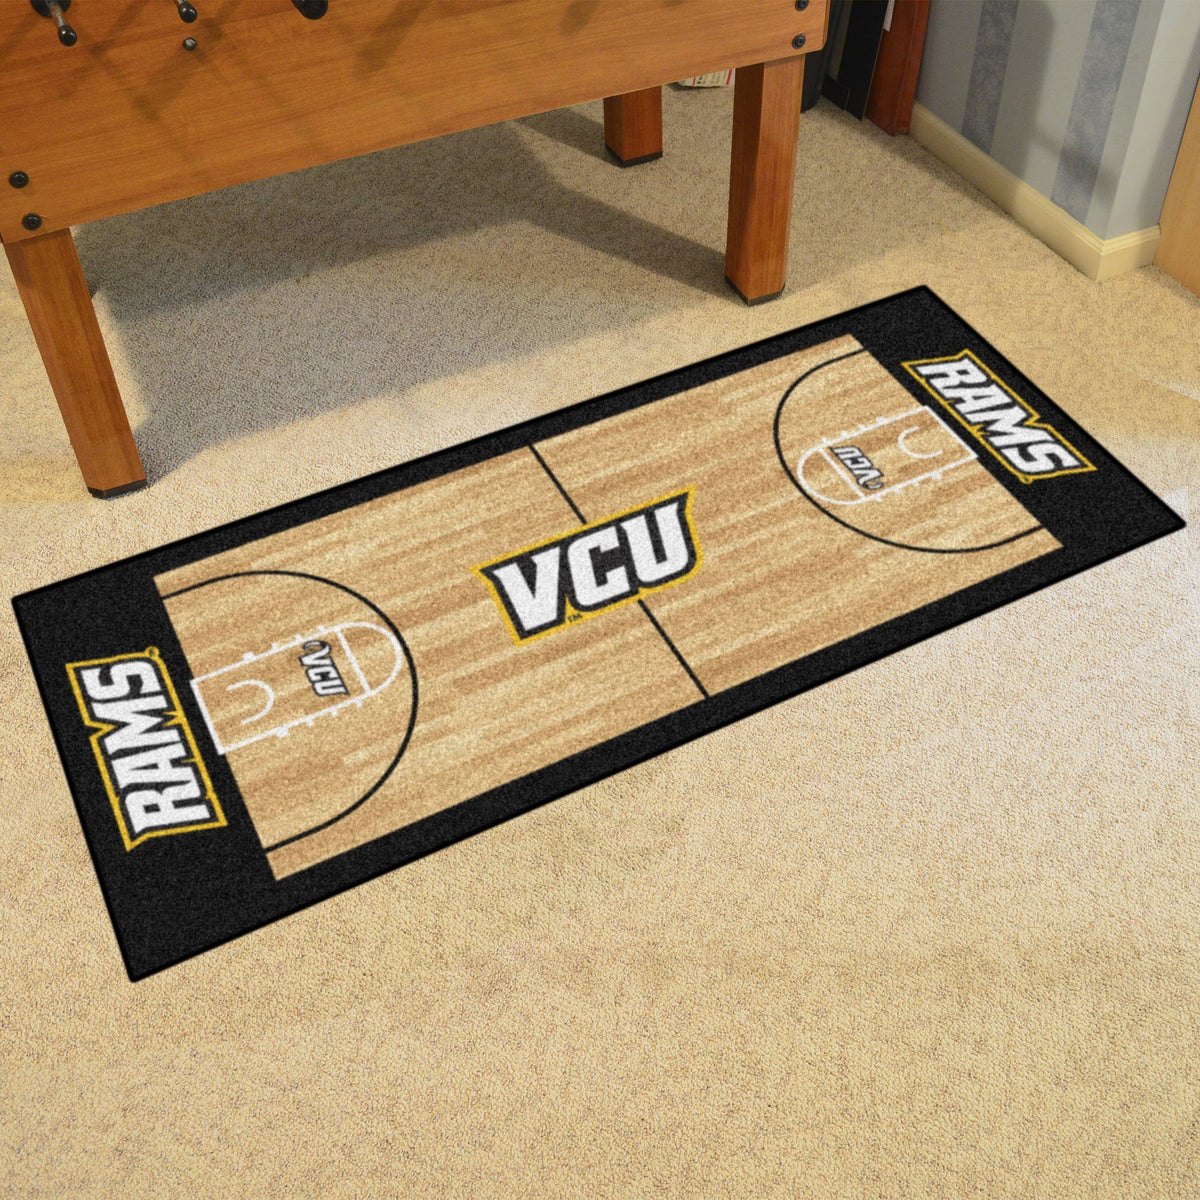 Collegiate - NCAA Basketball Runner Collegiate Mats, Rectangular Mats, NCAA Basketball Runner, Collegiate, Home Fan Mats VCU